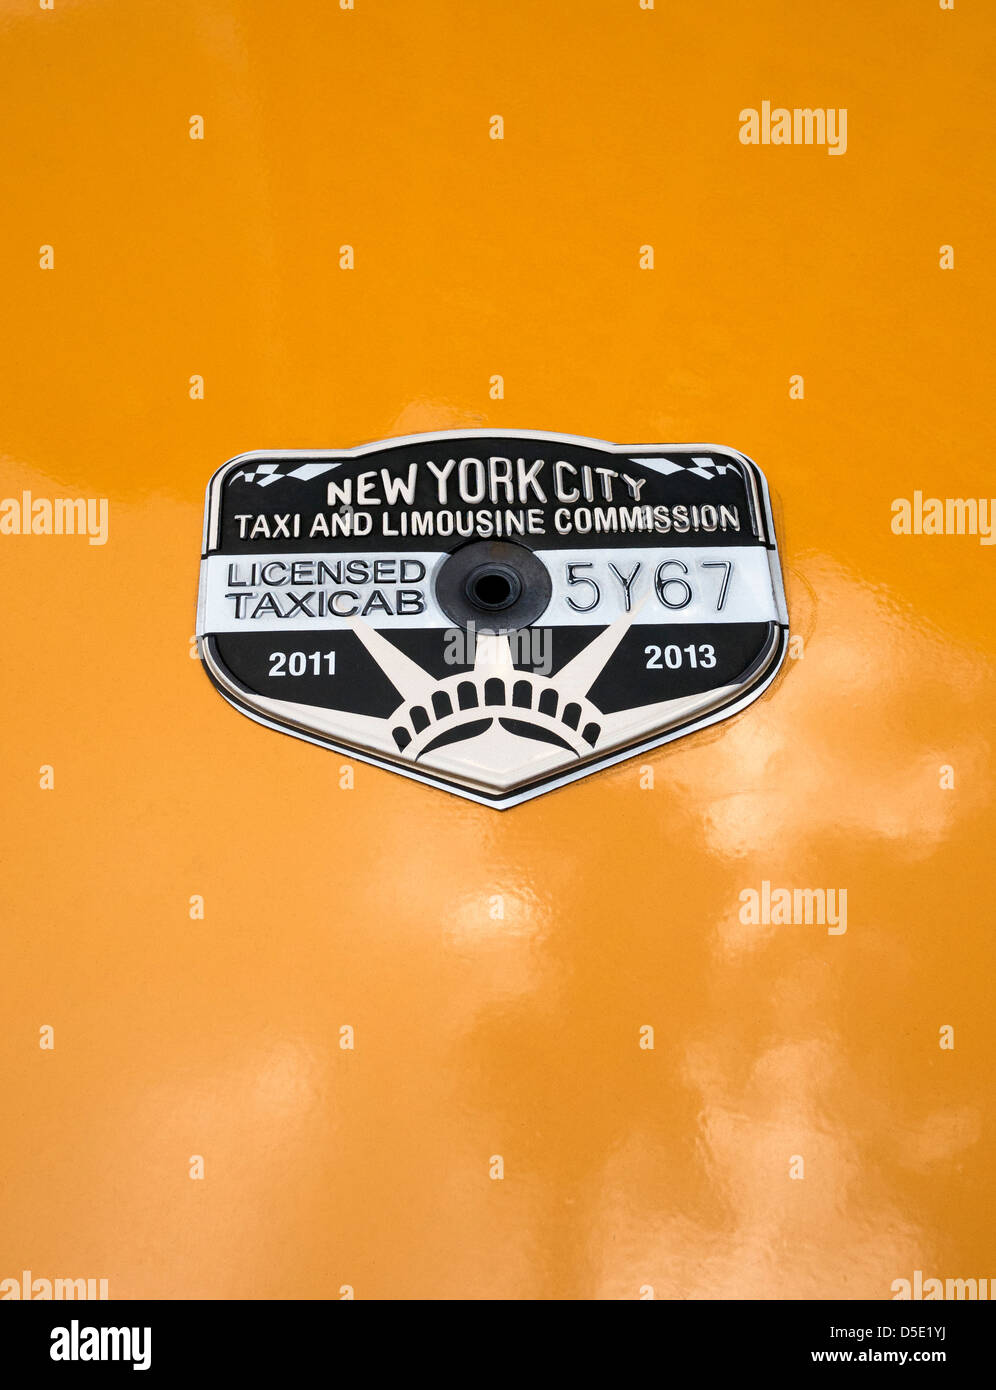 New York taxi medallion license for a yellow taxi - Stock Image